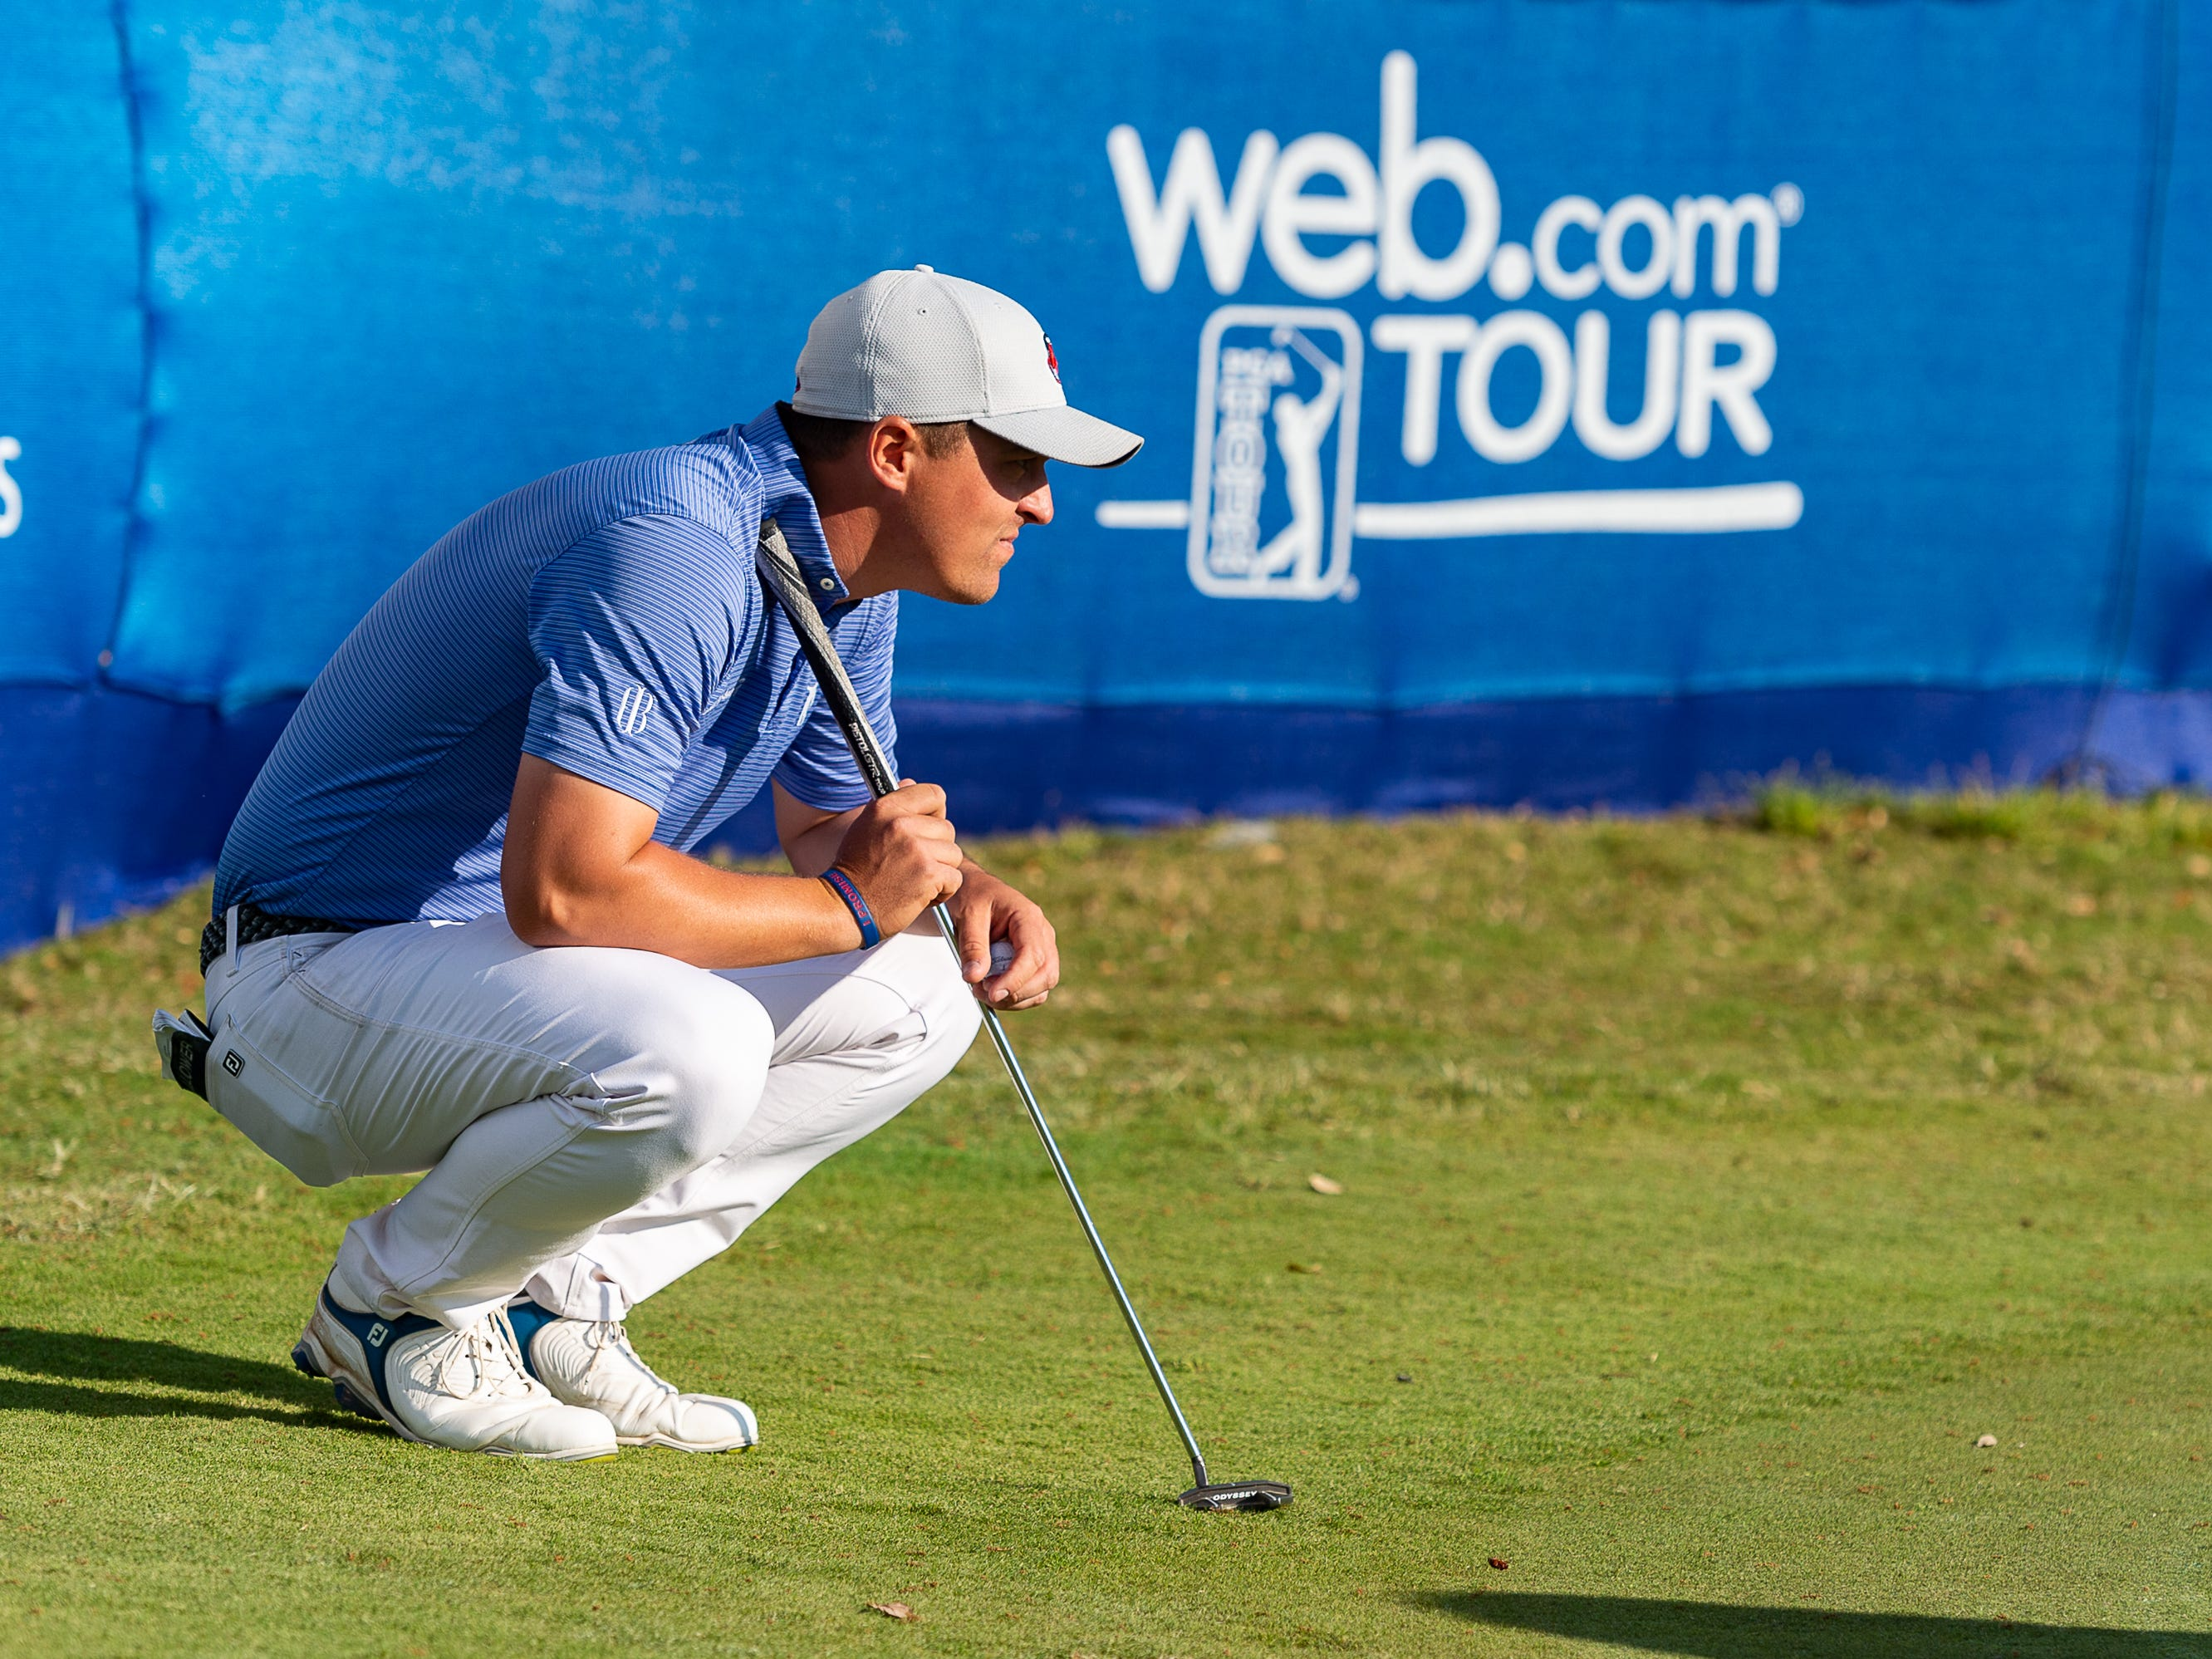 Justin Lower lines up a putt on 18 during the third round of The Web.com Tour in Lafayette for the 2019 Chitimacha Louisiana Open at Le Triomphe. Saturday, March 23, 2019.